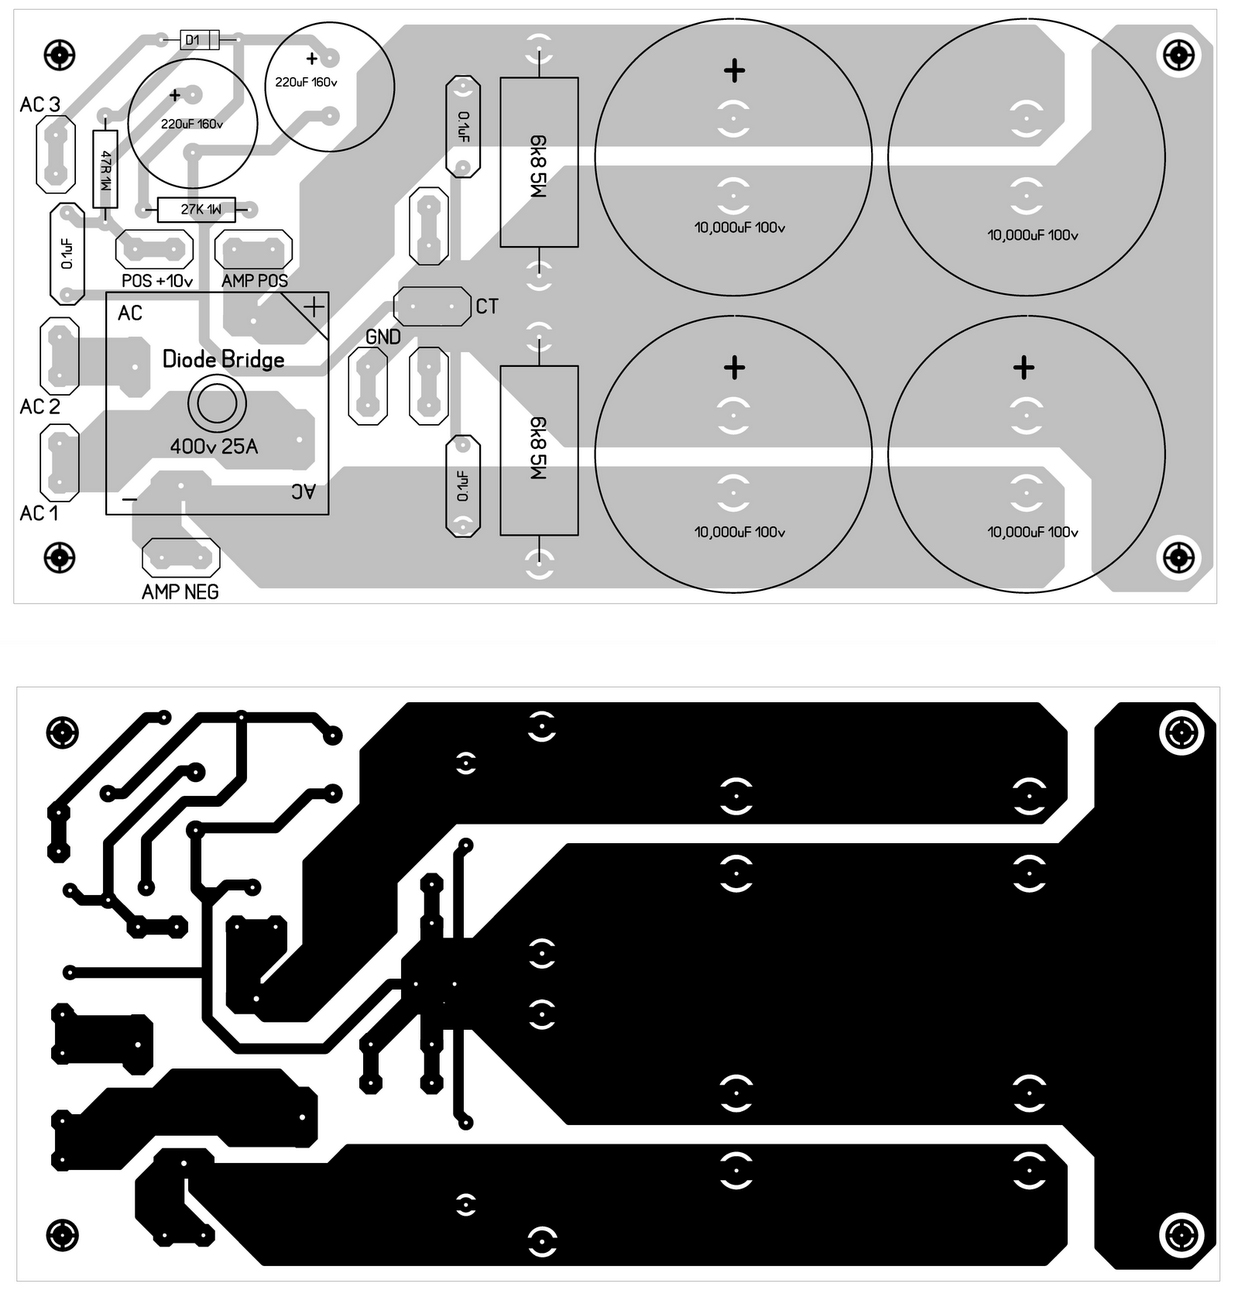 Audio Power Amplifier Circuit Diagram With Pcb Layout Custom 1000w Inverter Electronic Circuits 600w Mosfet Design Rh Amplifiercircuit Net Cmoy